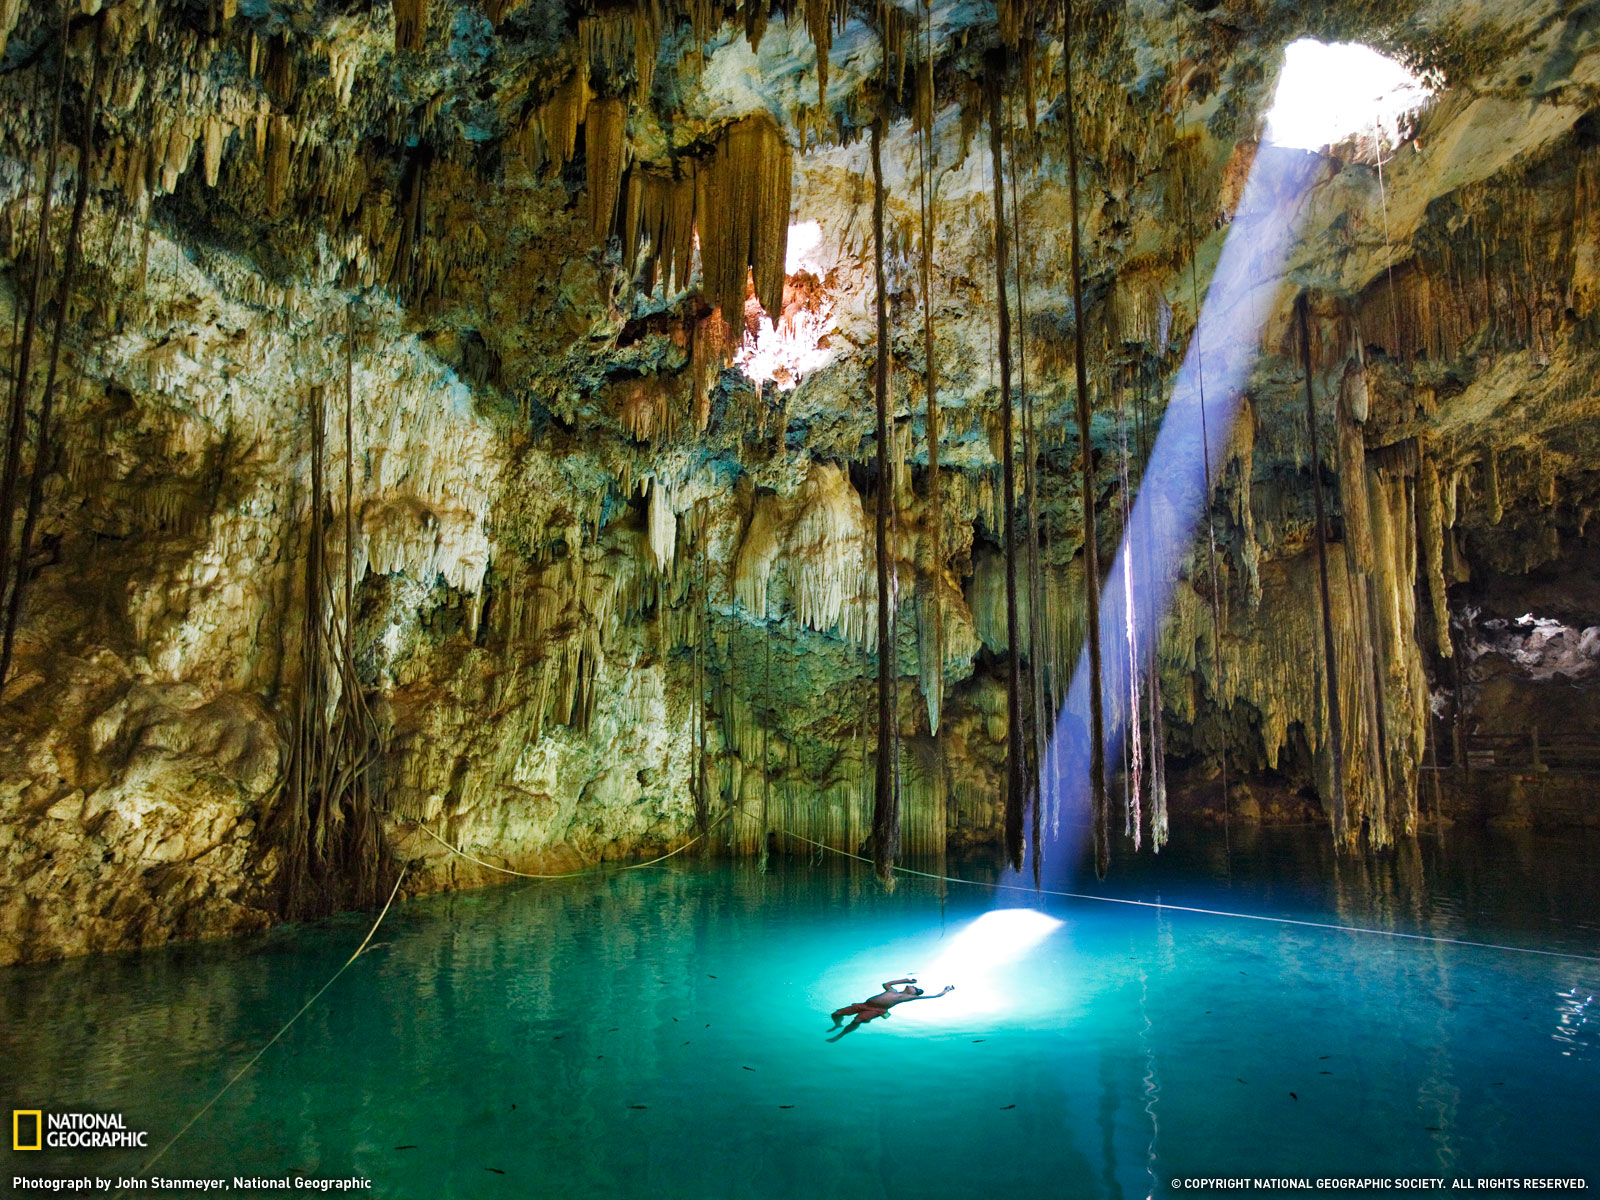 Xkeken Cenote  Mexico NATG Natural well in Mexico